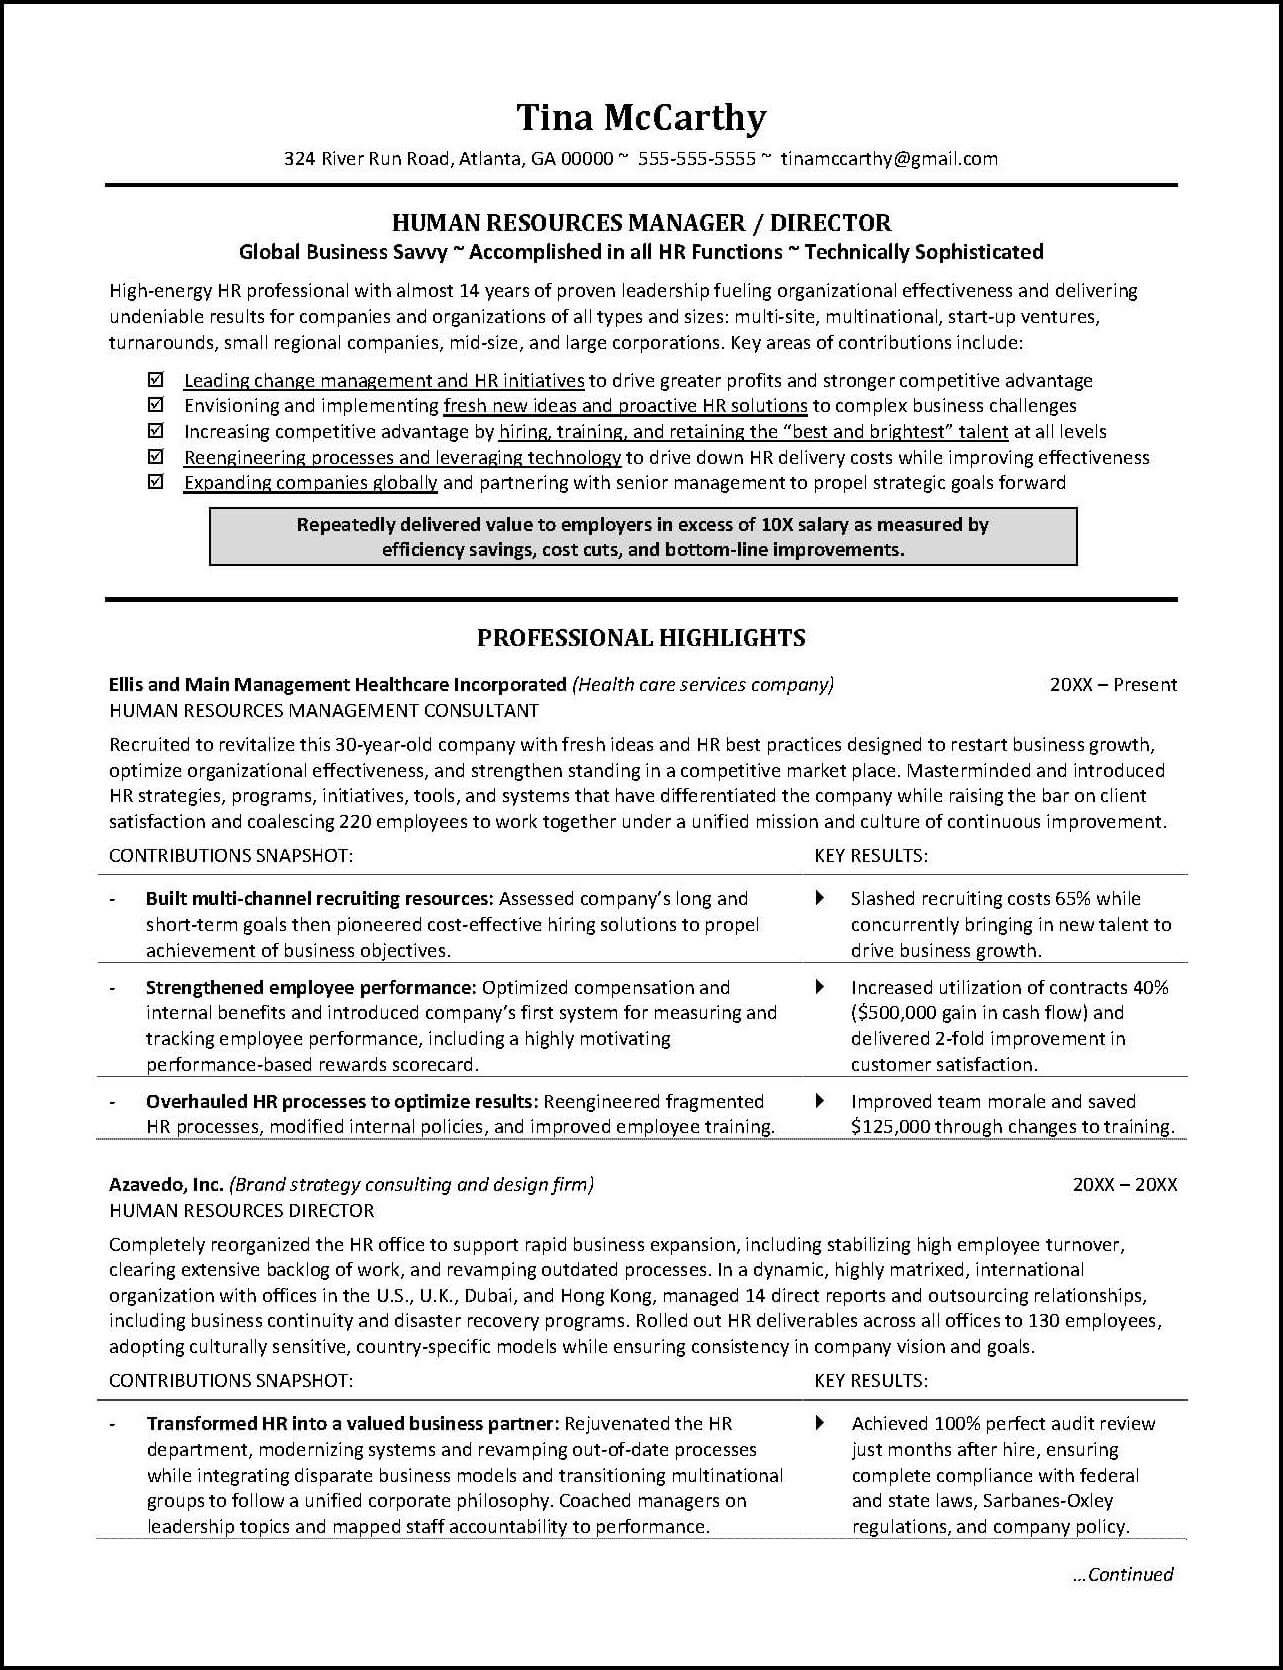 human resources resume example distinctive career services employee relations manager Resume Employee Relations Manager Resume Example